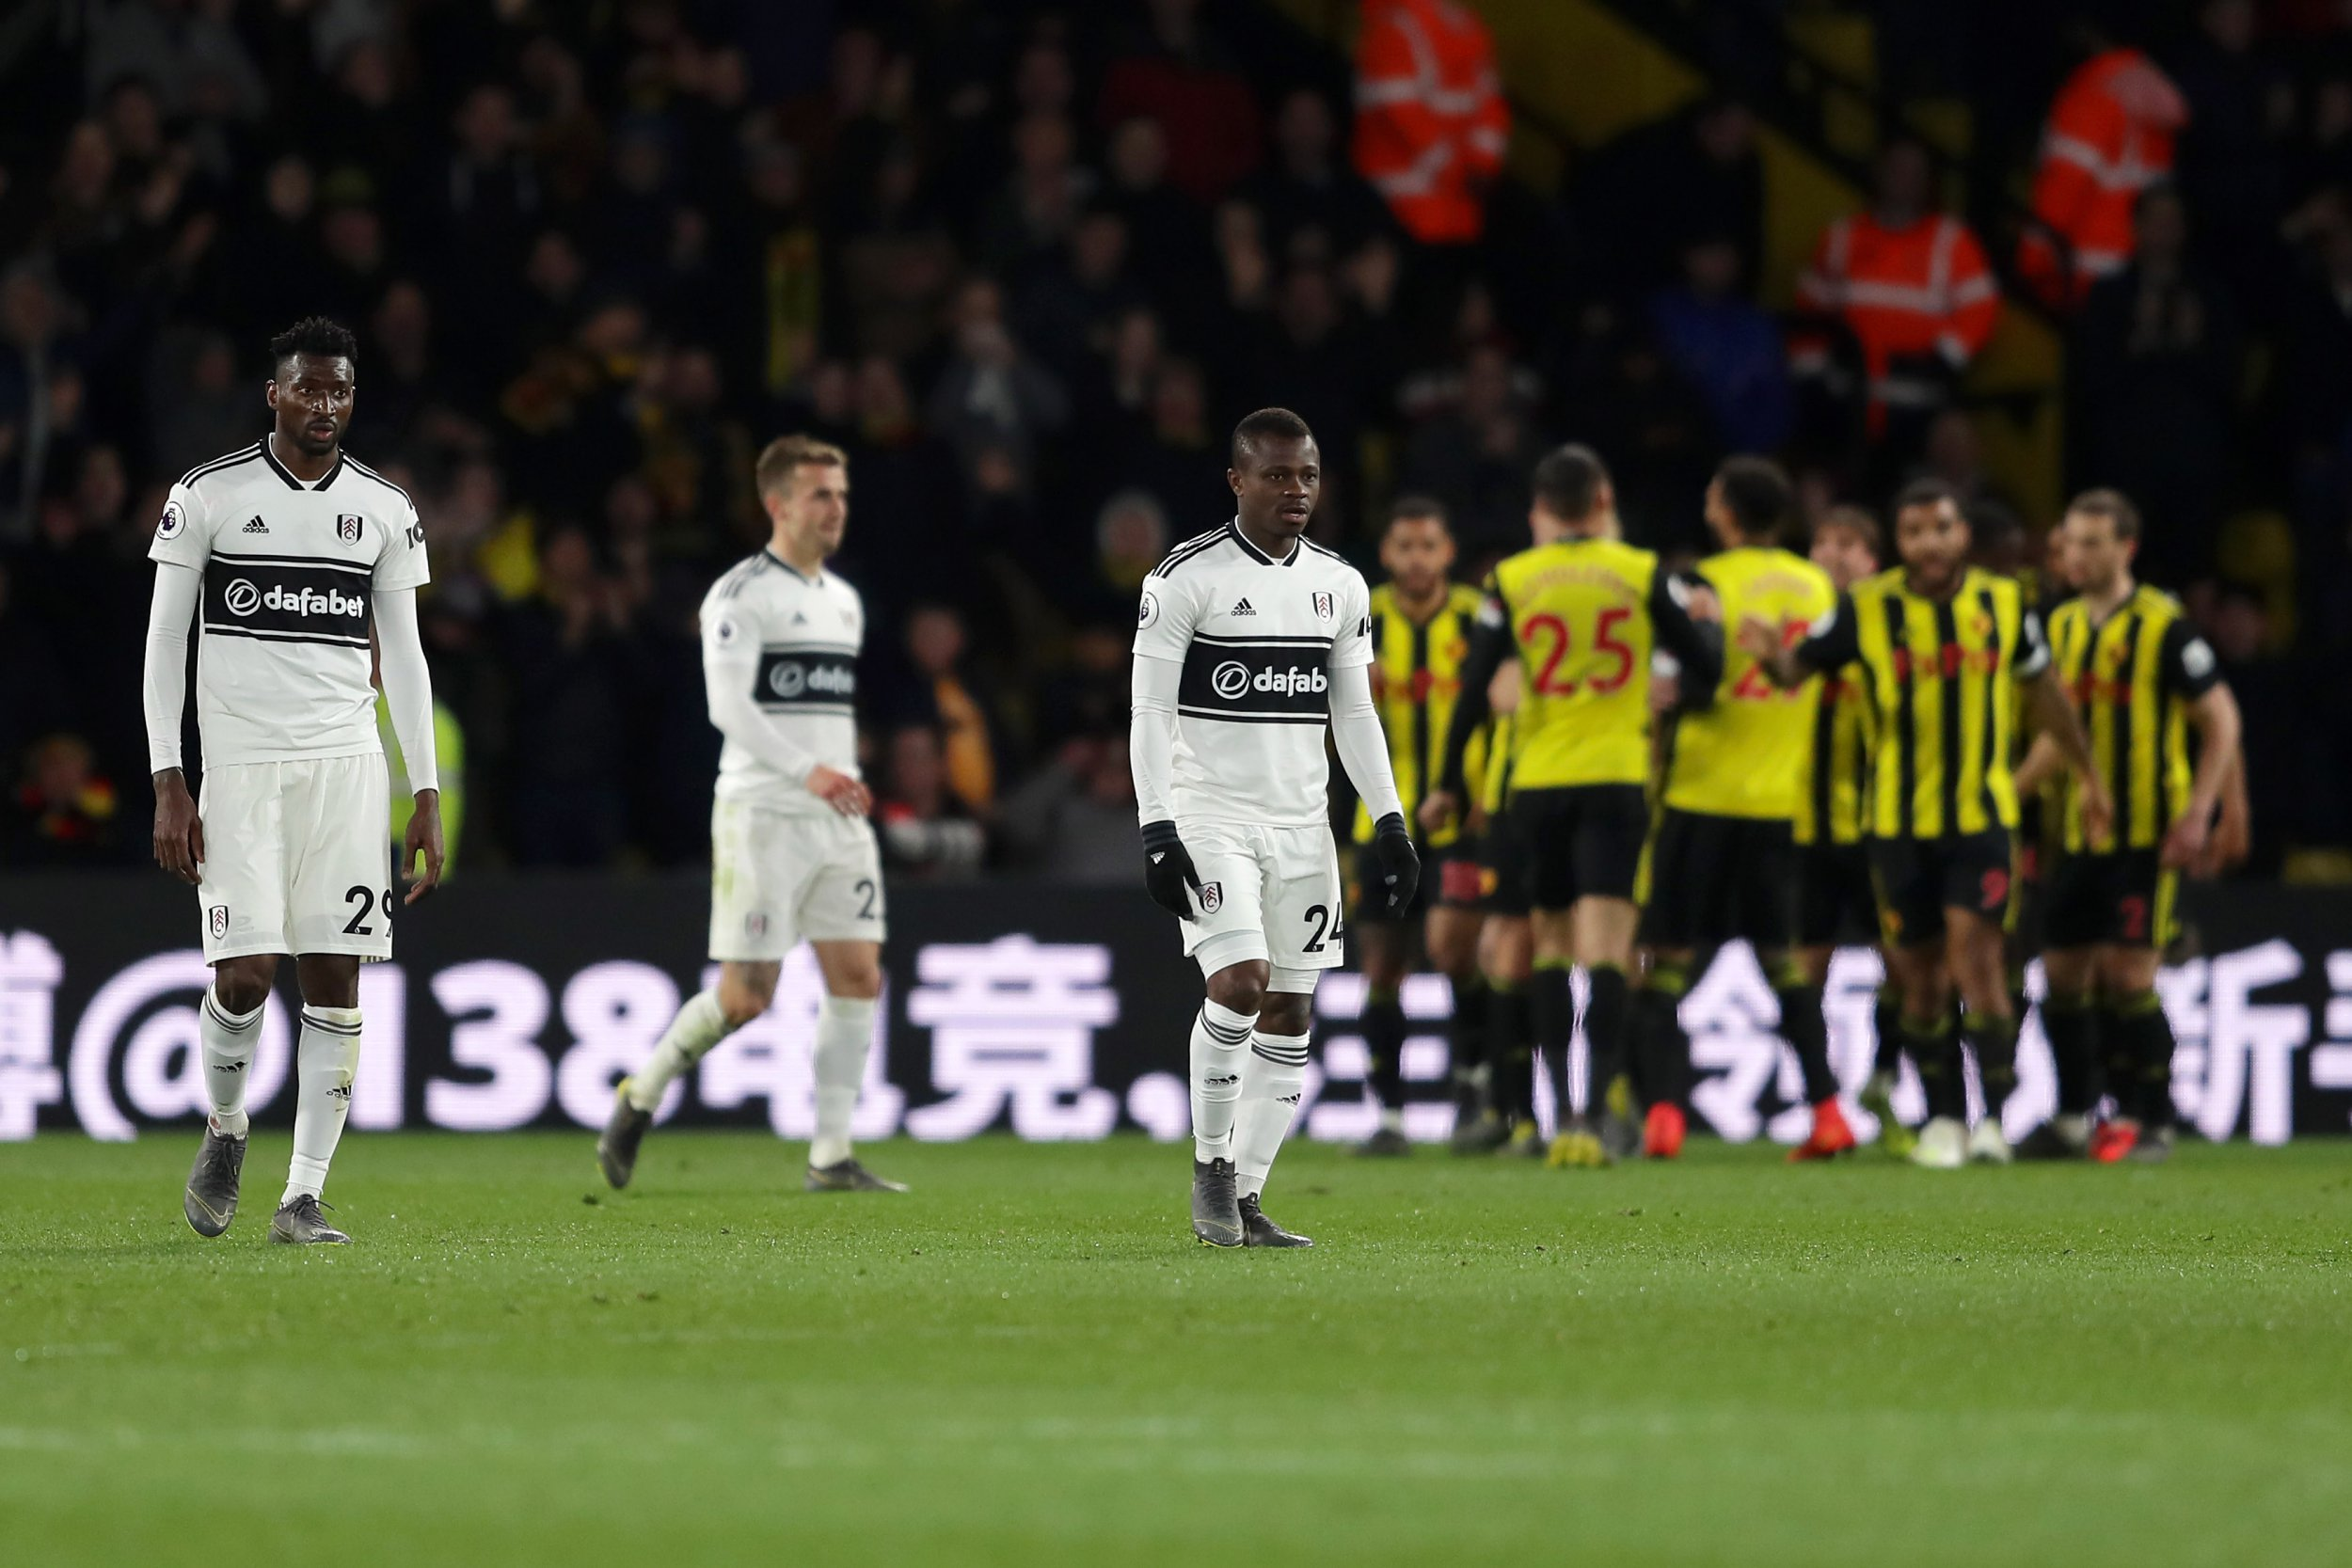 Fulham relegated from Premier League after Watford thrashing